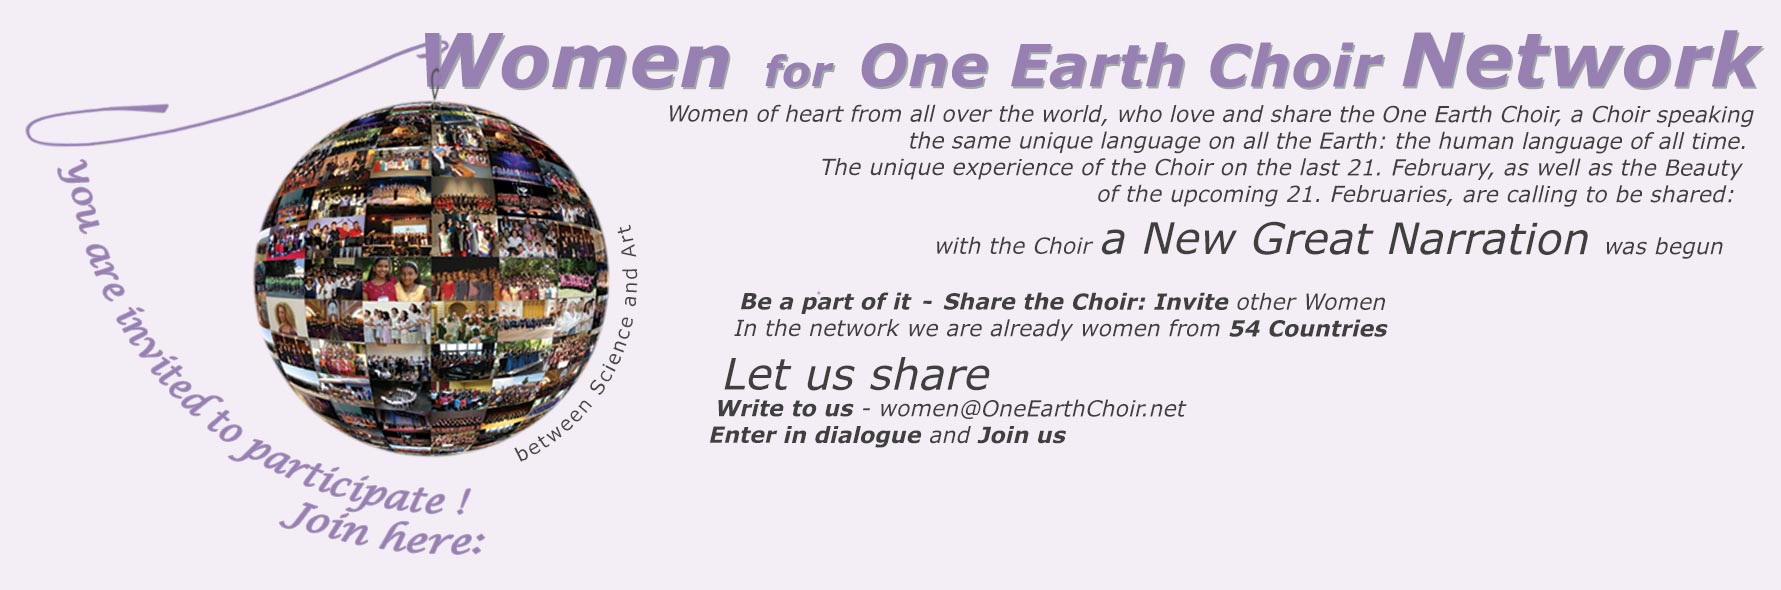 Women for One Earth Choir Network